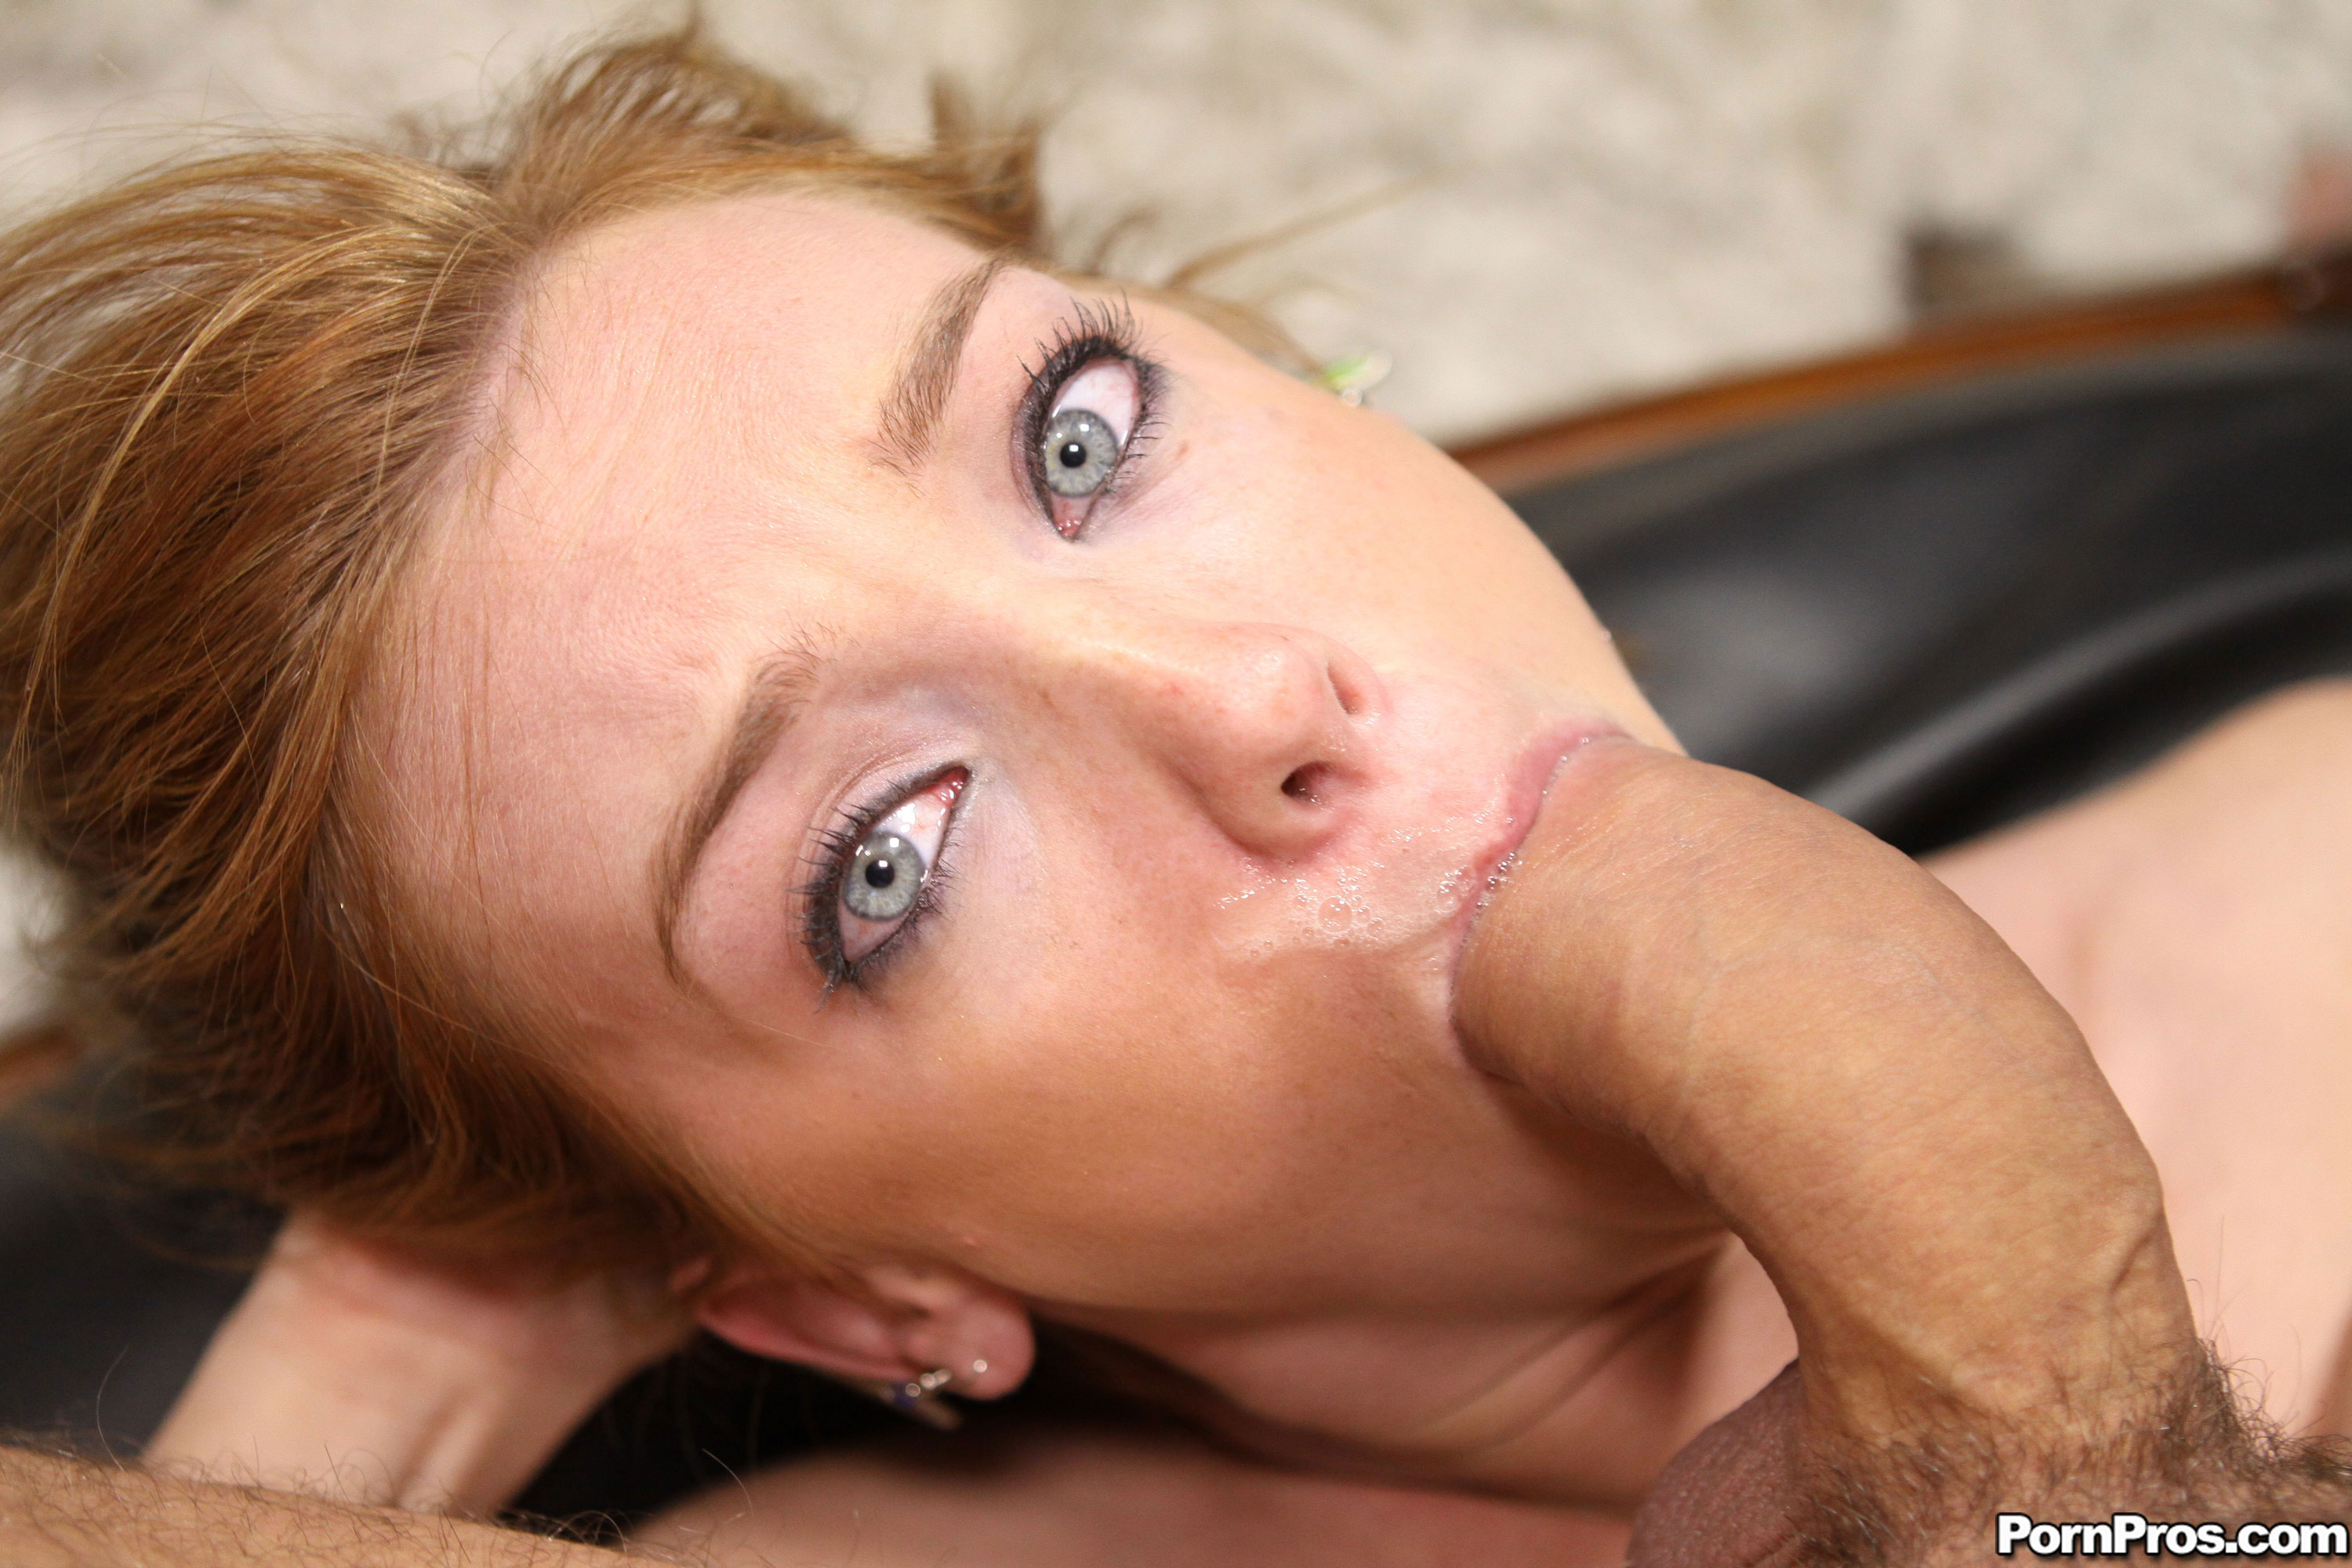 Share Deepthroat pic galleries sorry, that